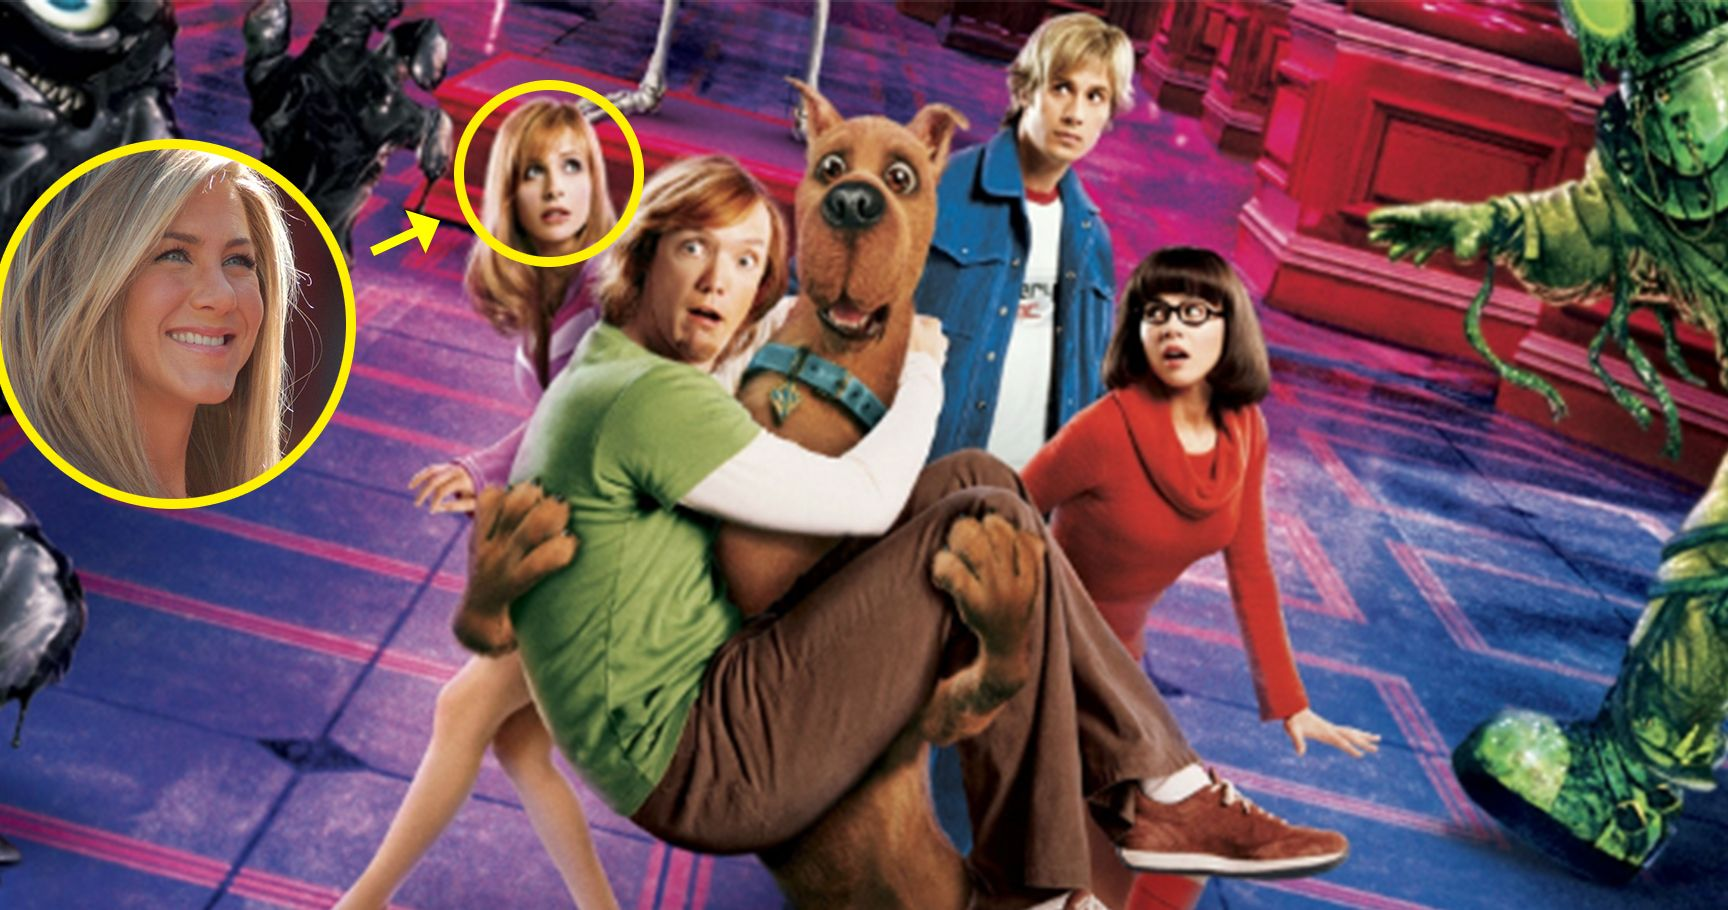 15 Things Most People Don't Know About The 'Scooby-Doo' Franchise